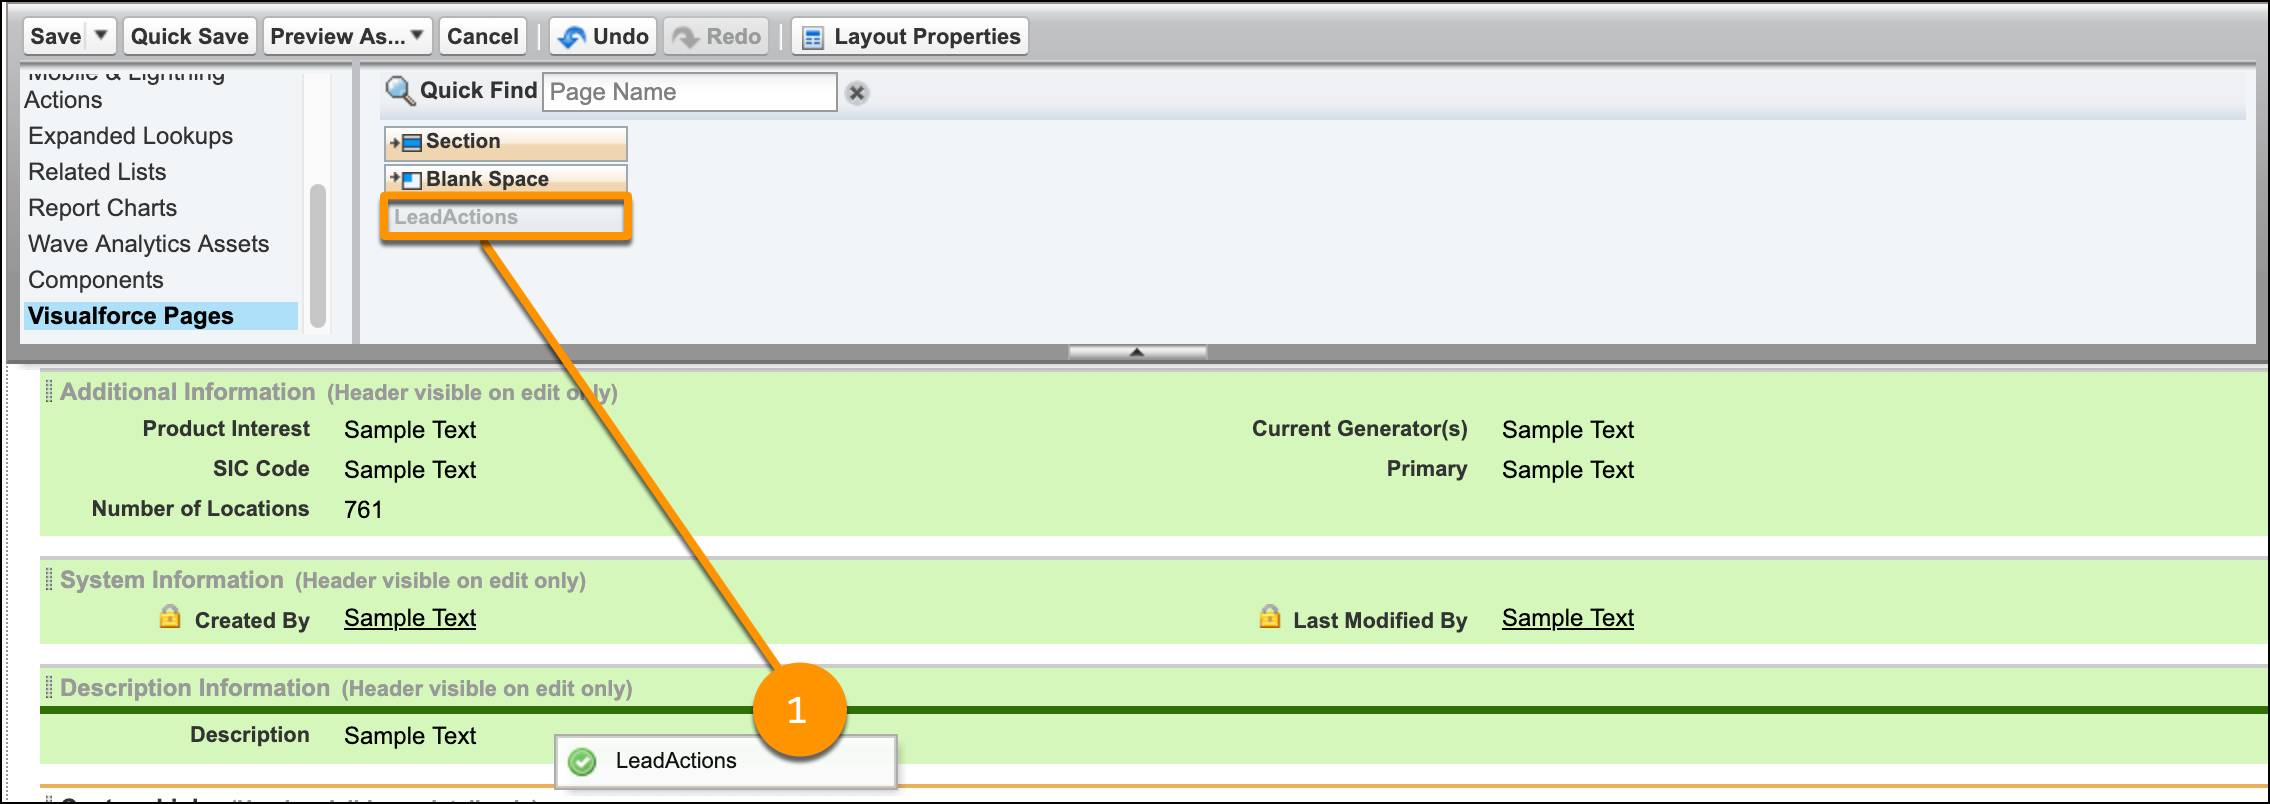 The Visualforce page LeadActions is highlighted, showing it dragged to the Lead page under Description Information.